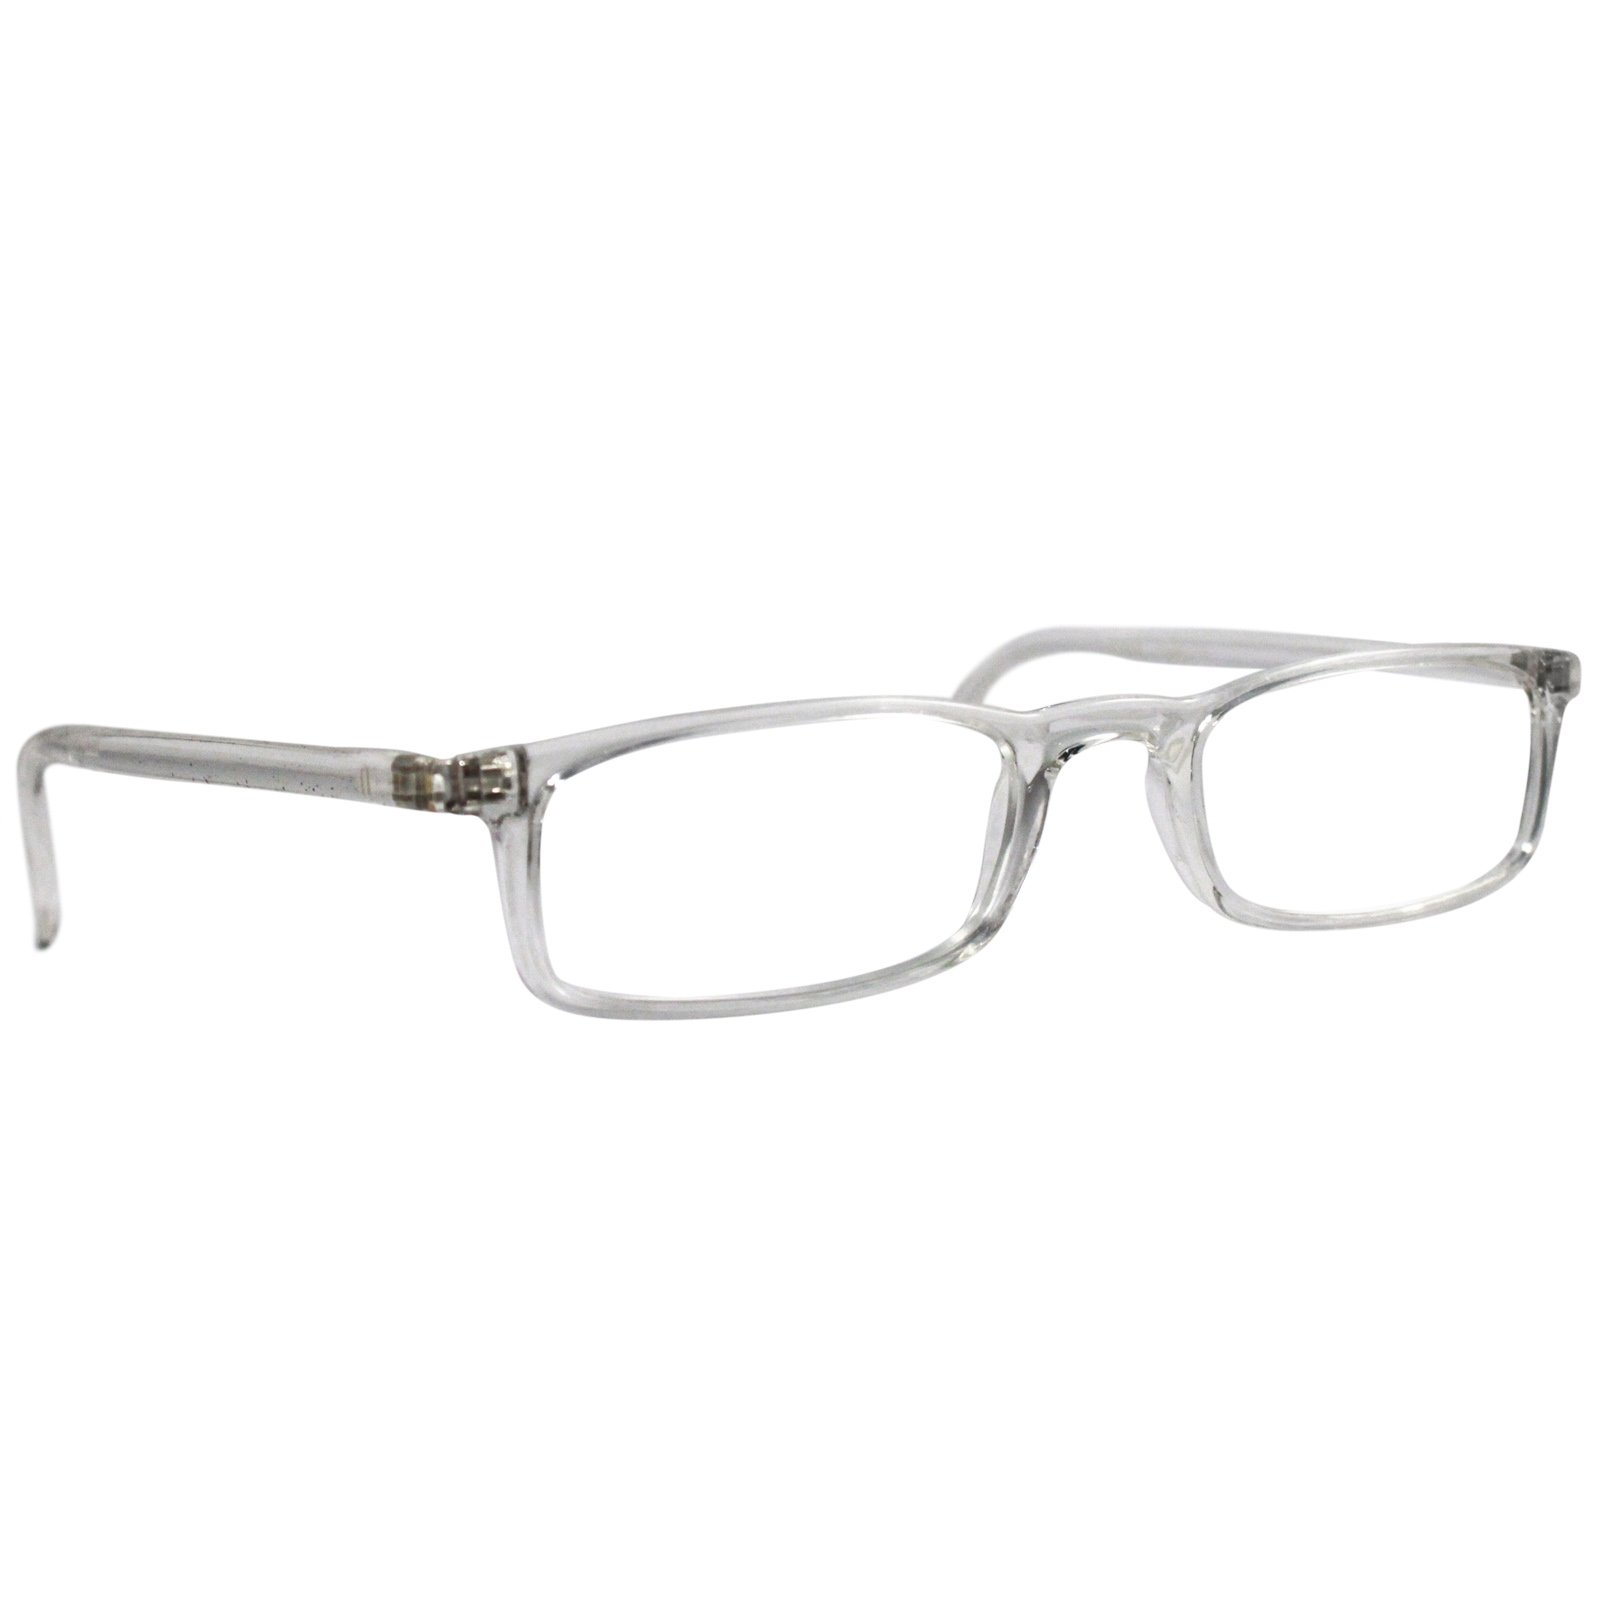 Reading Glasses Nannini Optics Vision Care Italian Fashion Readers - Crystal 3.0